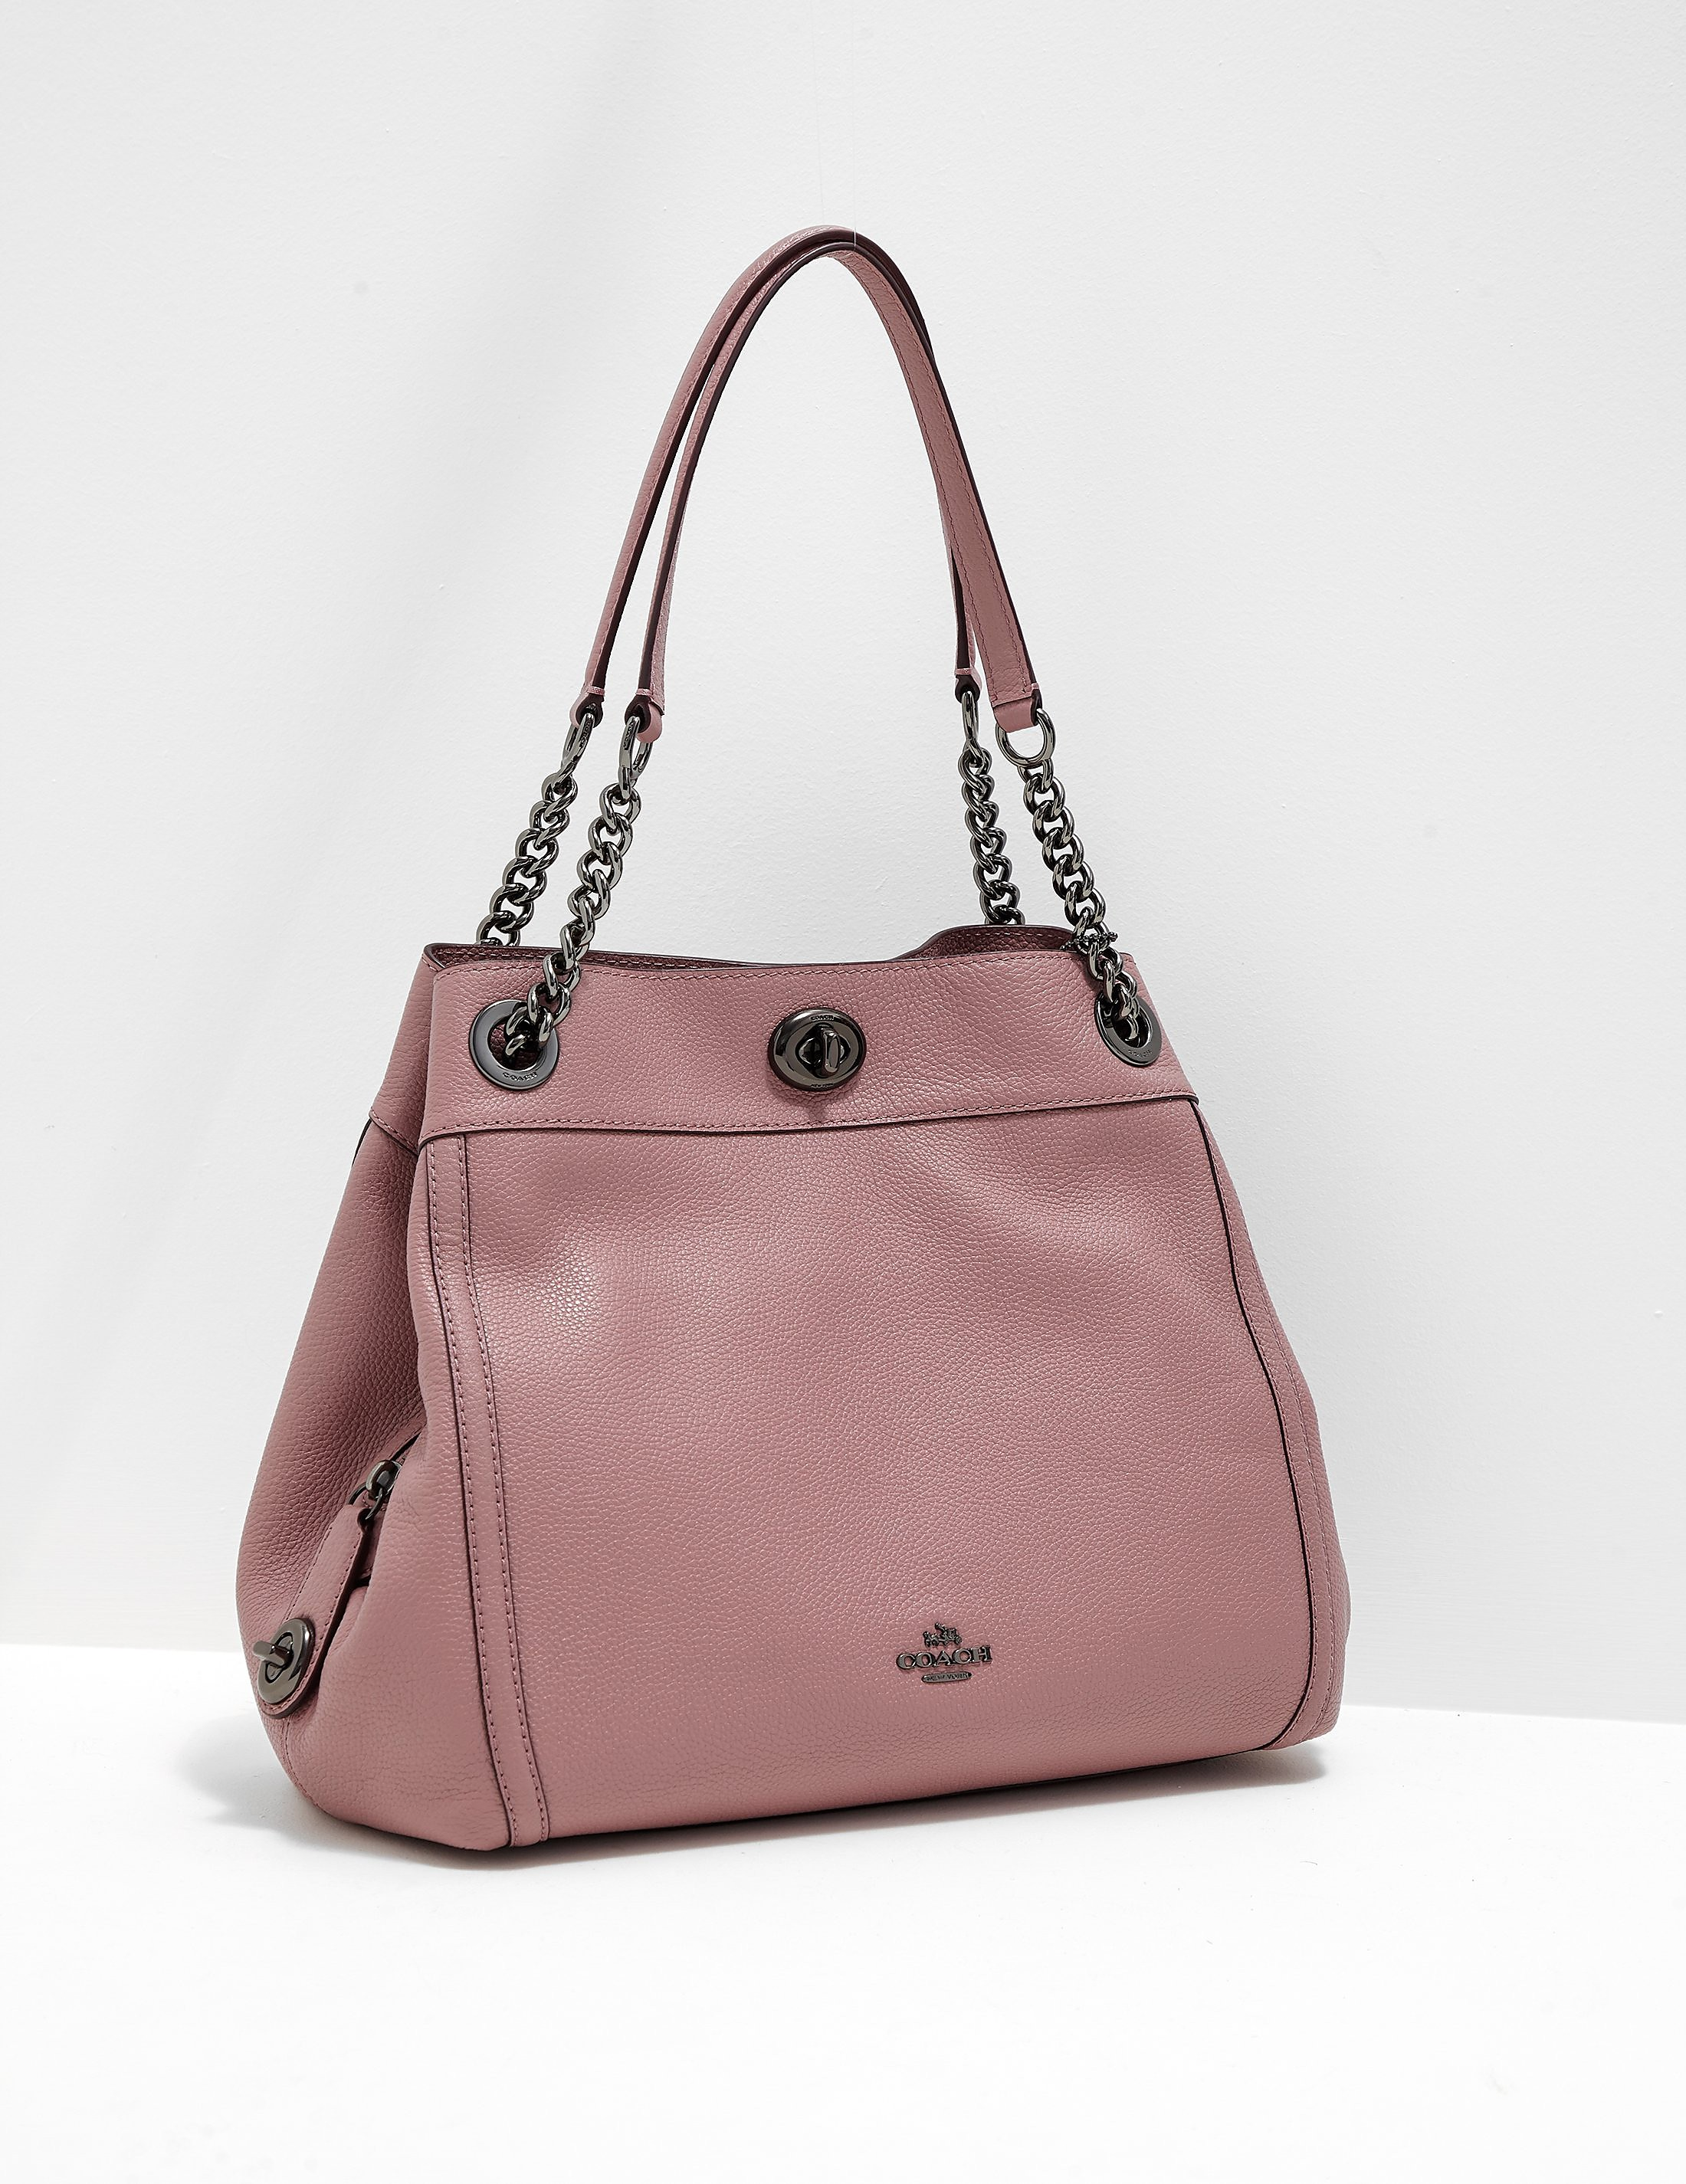 COACH Turnlock Edie Handbag